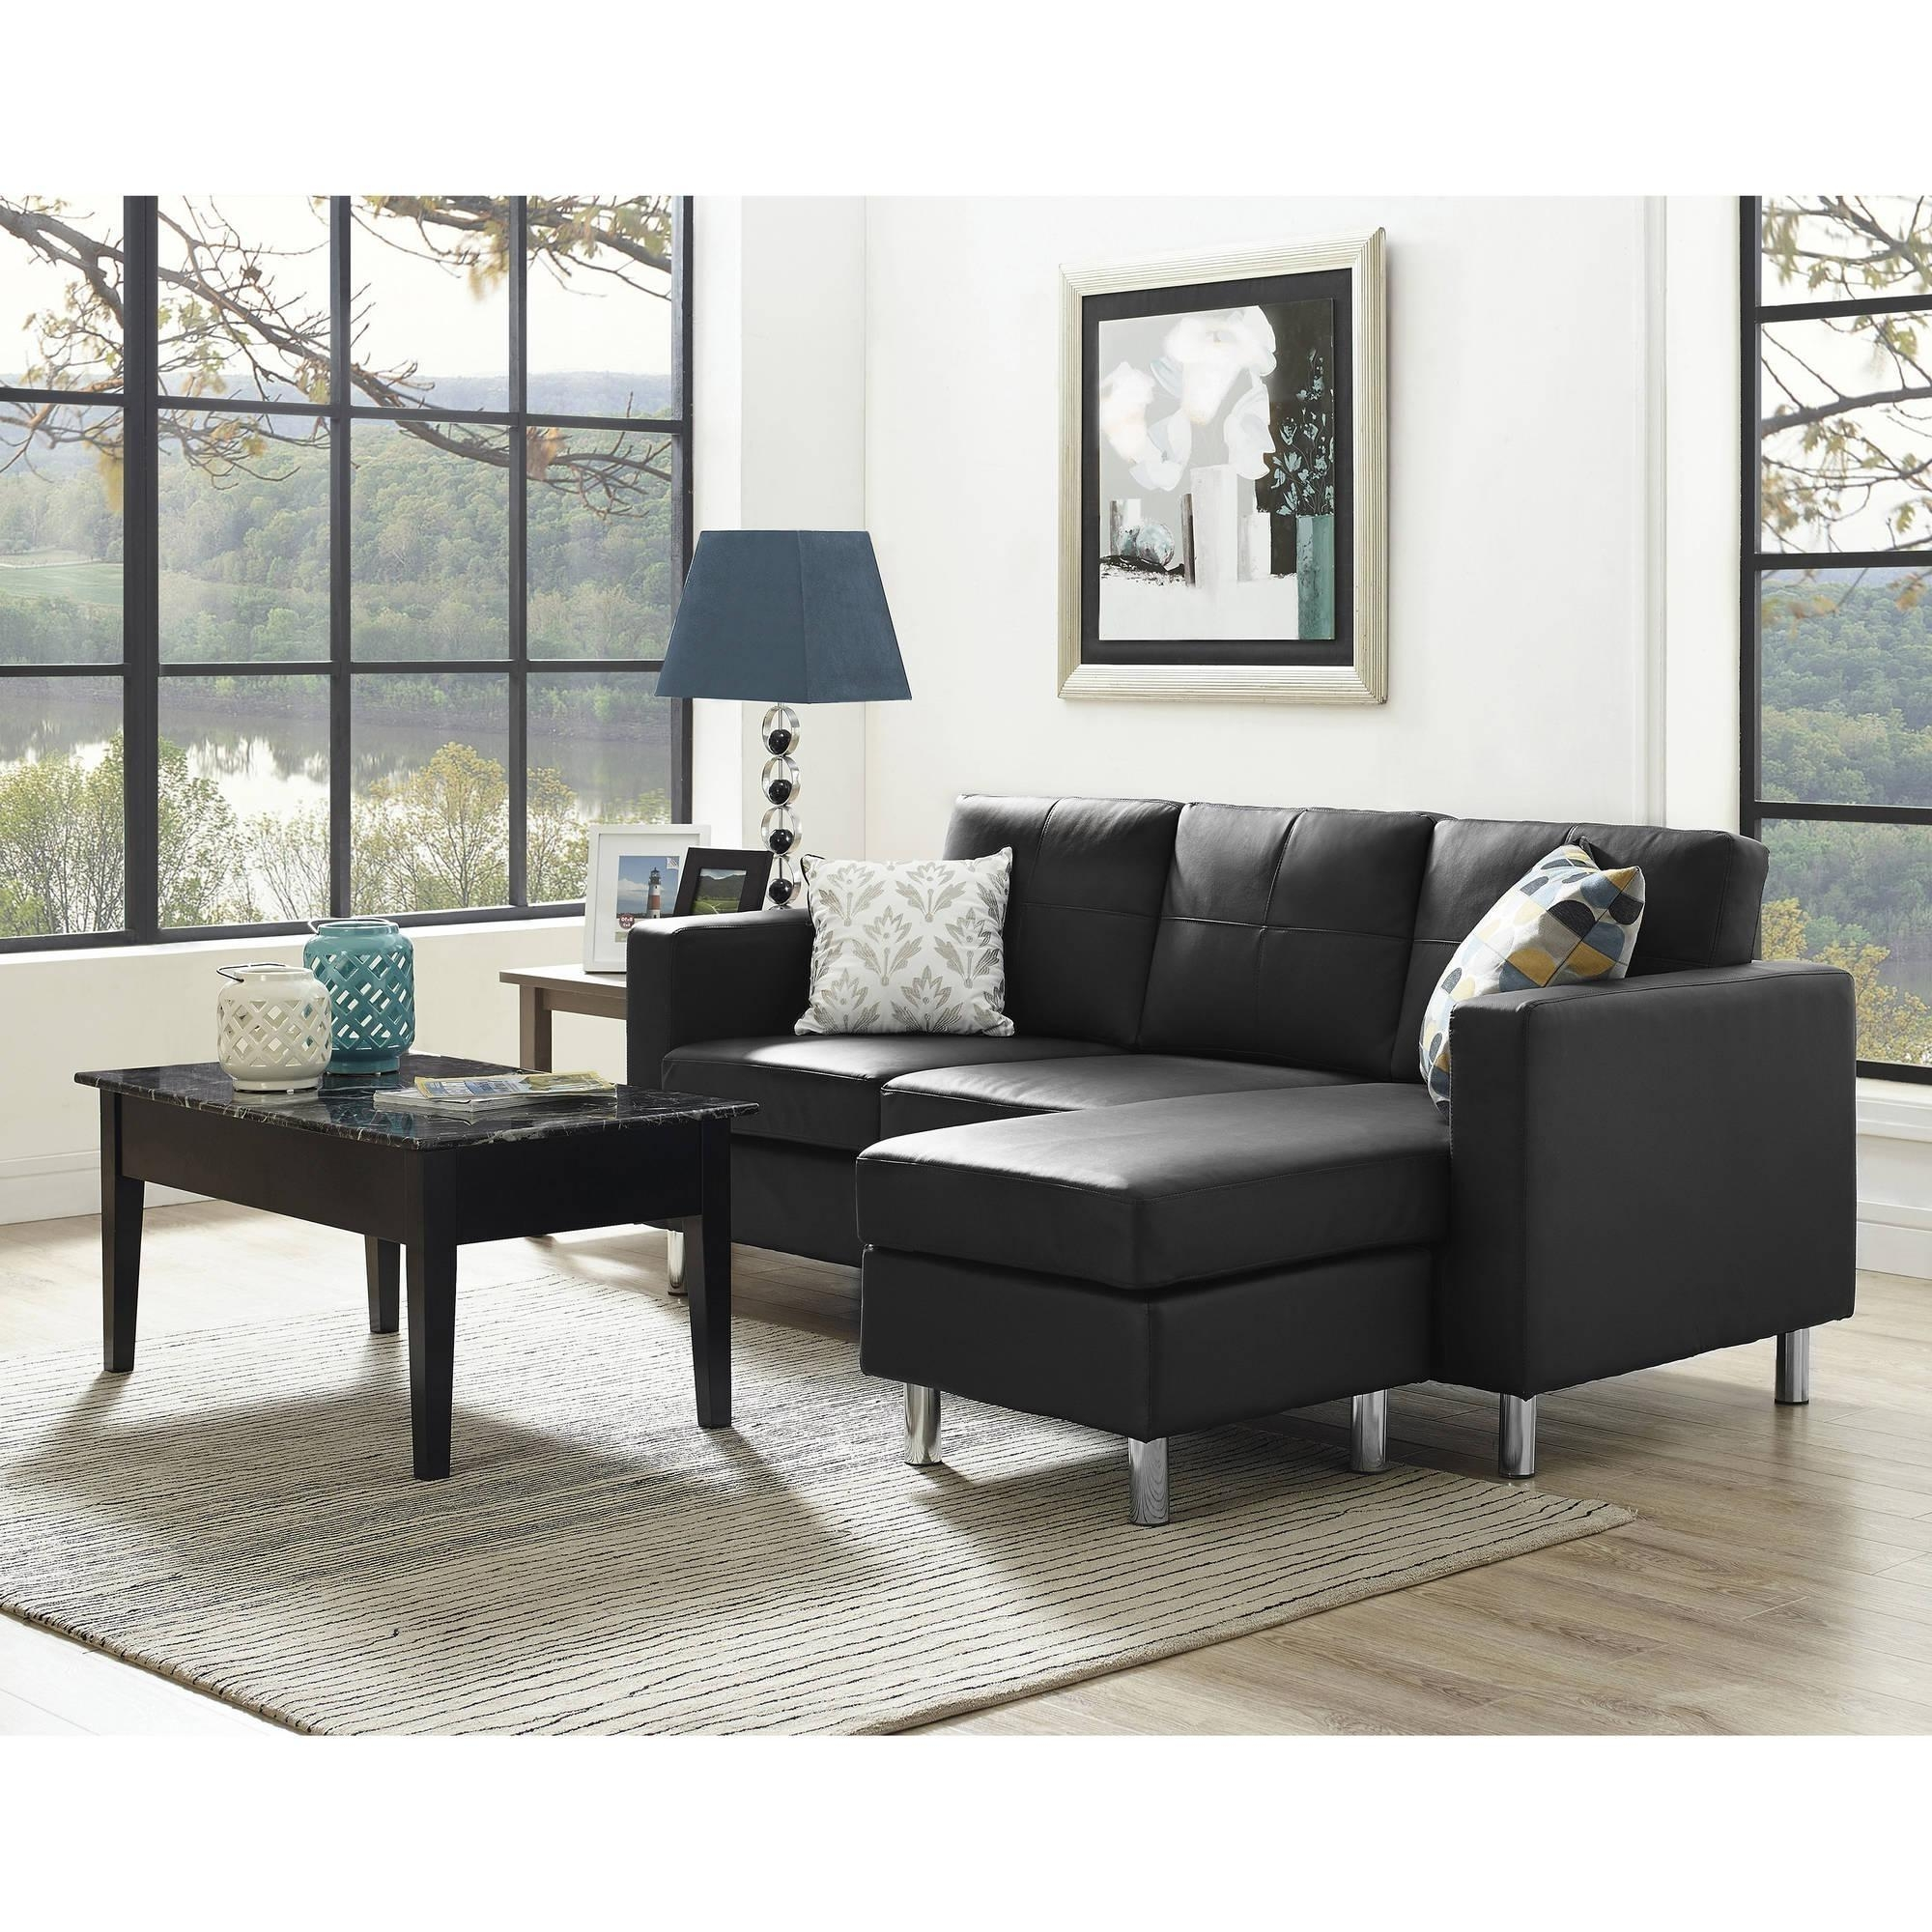 Home Design : Tone Round Sectional Sofa Bed With Feature Brown Pertaining To Round Sectional Sofa Bed (View 14 of 20)